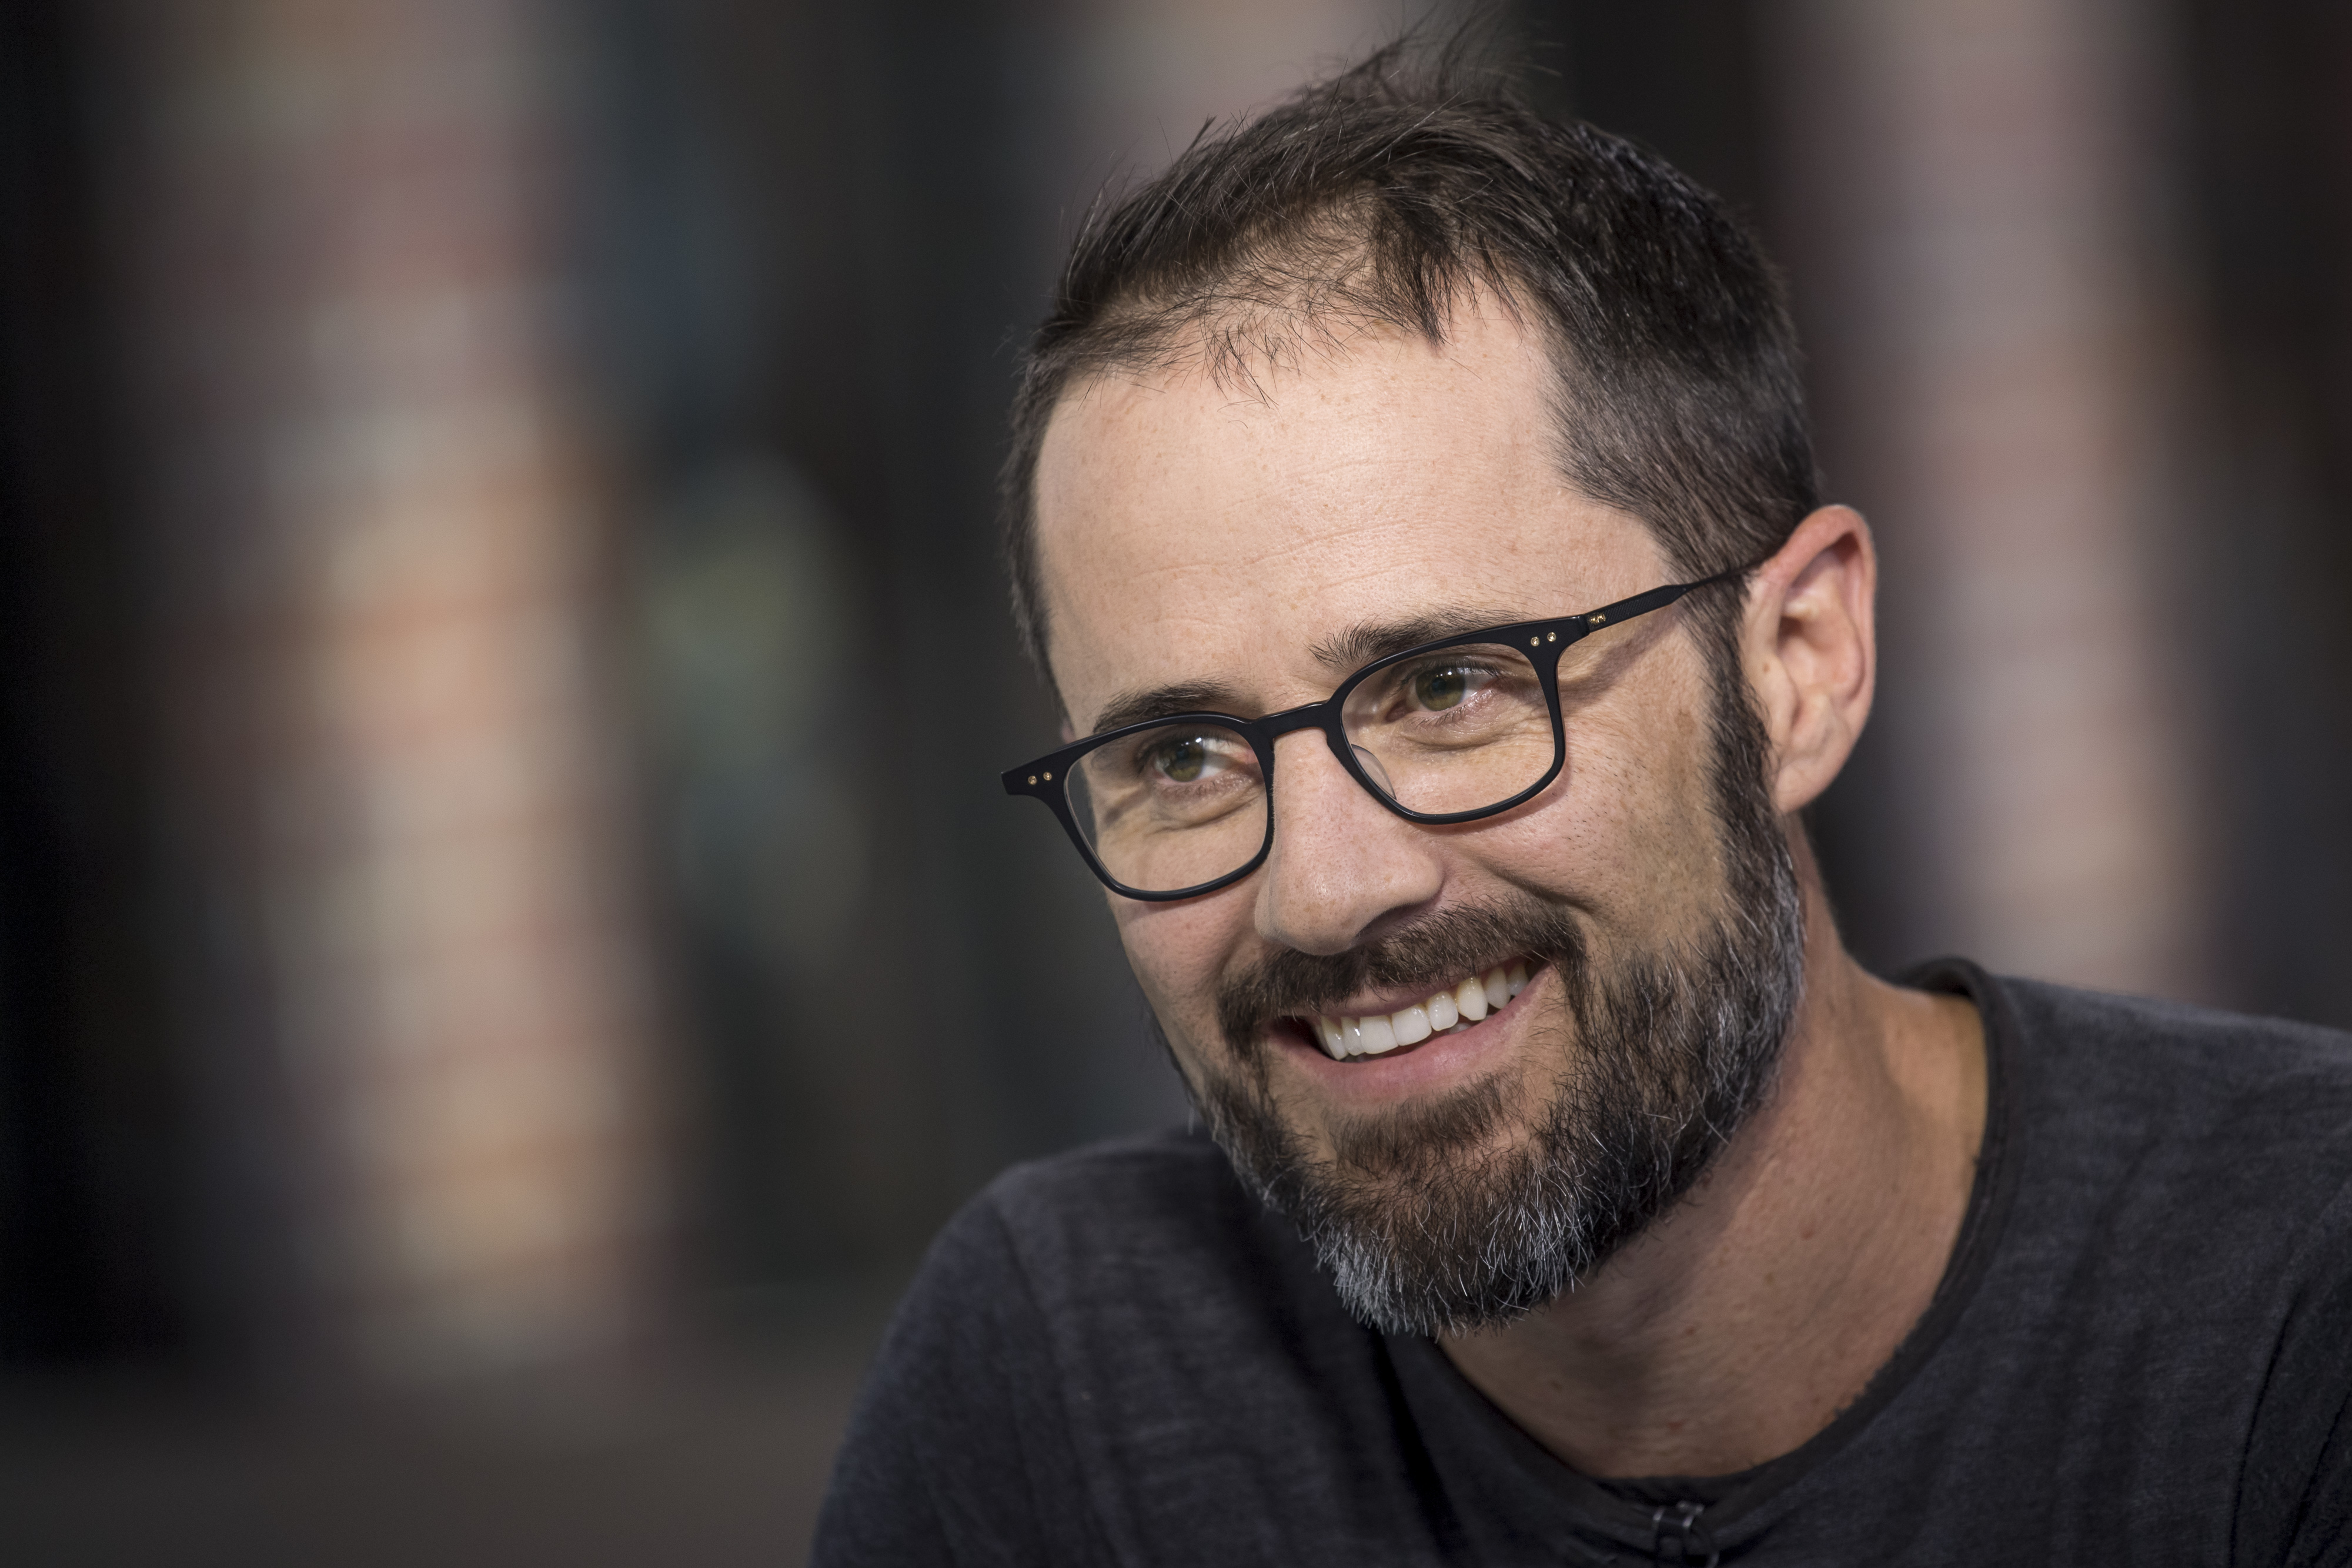 Twitter Inc. Co-Founder and Medium.com Chief Executive Officer Evan Williams Interview